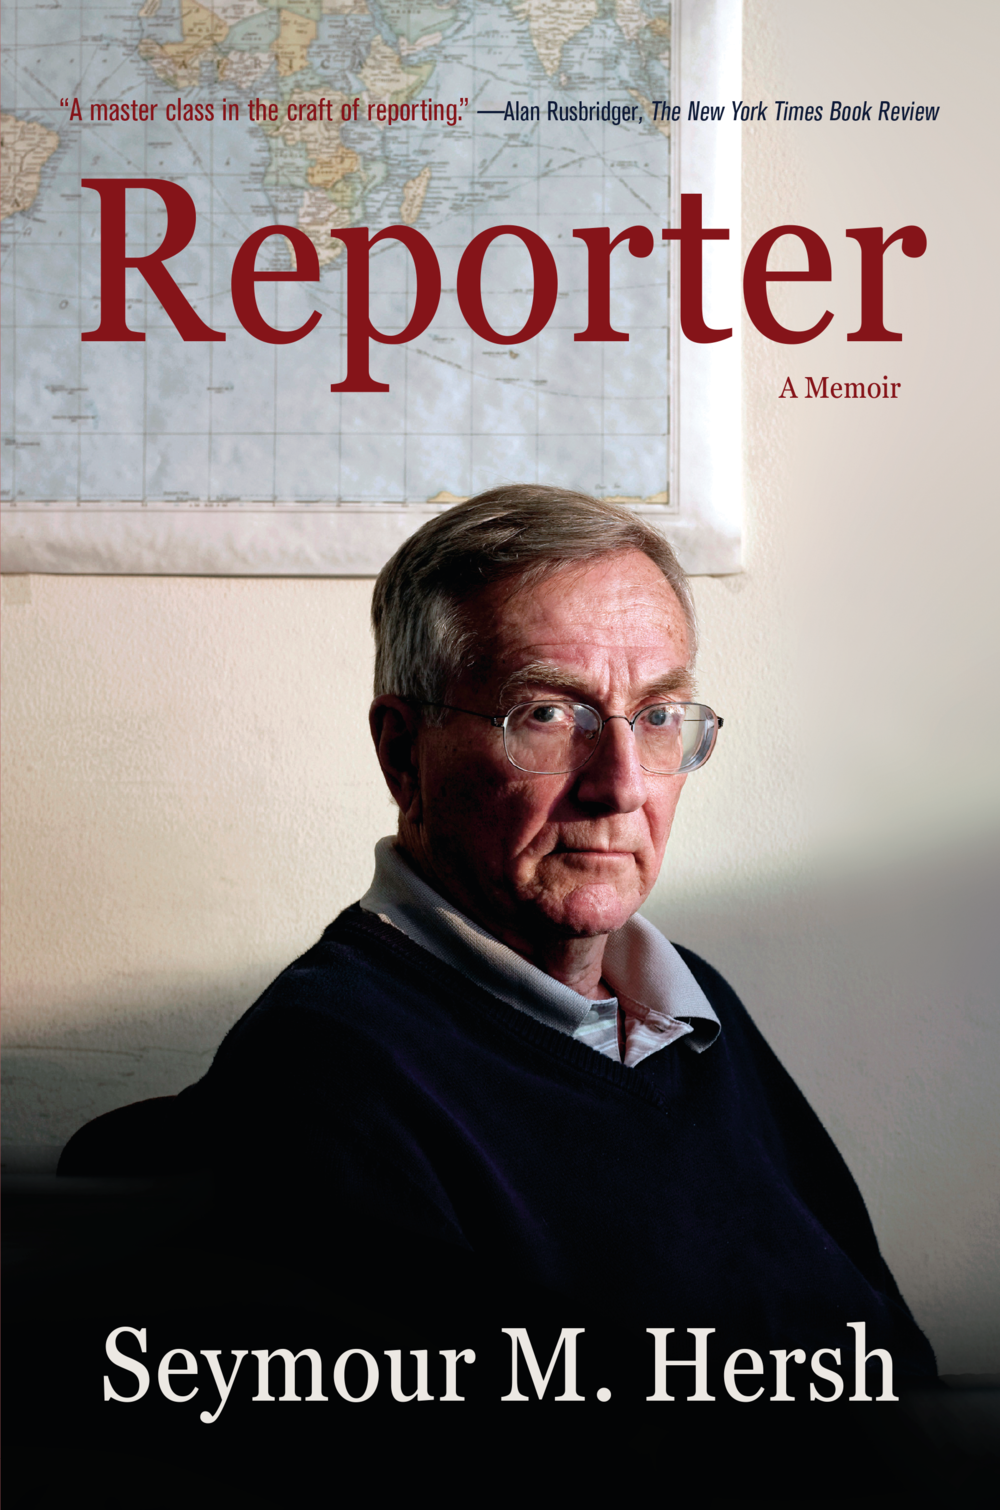 Reporter by Seymour M. Hersh (Vintage, May 14, 2019)